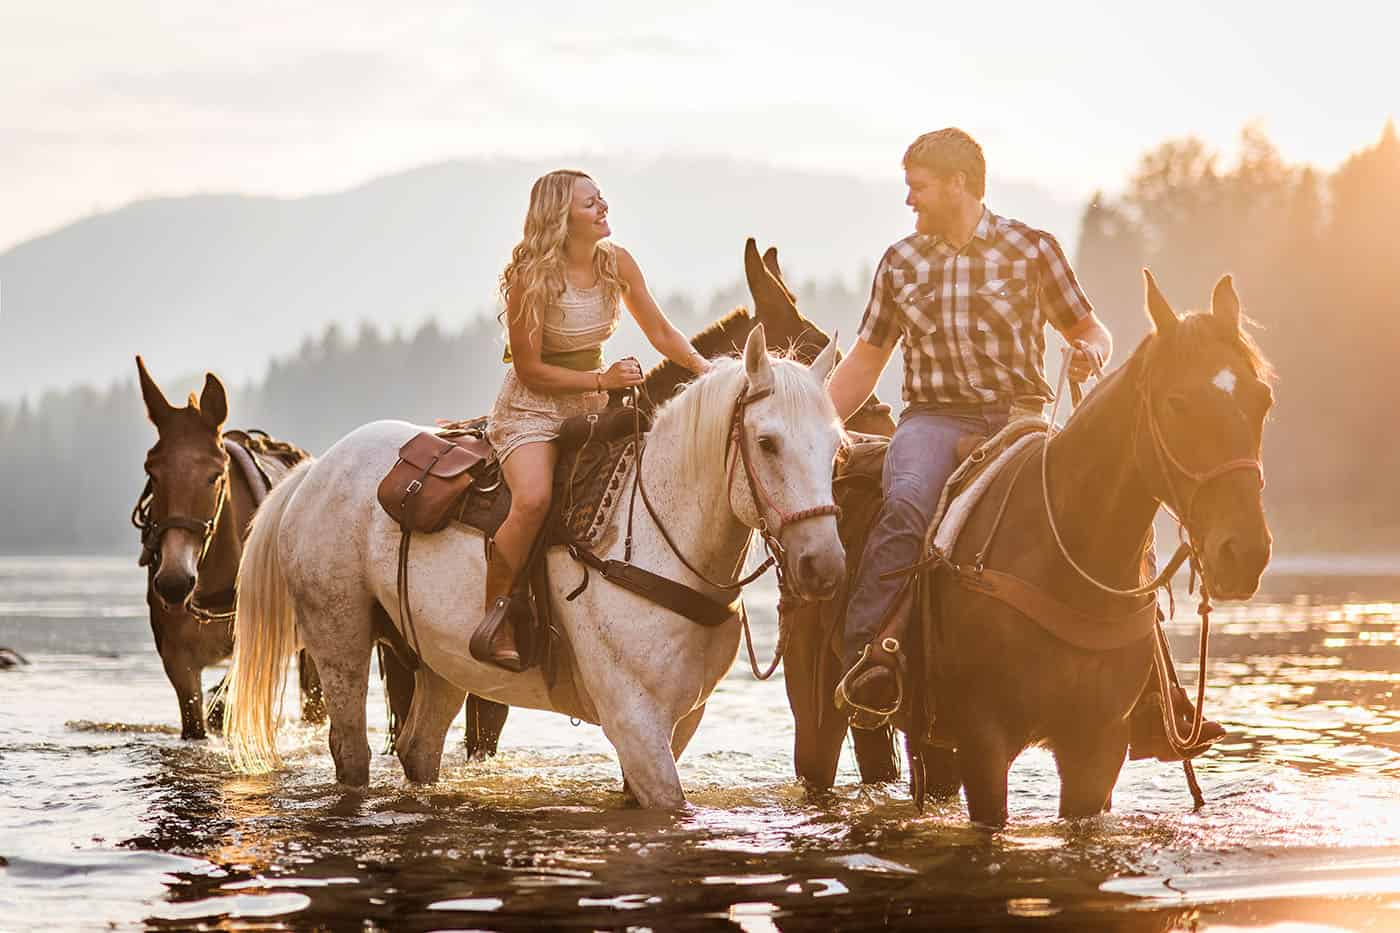 Epic Montana Photo Locations - beautiful couple on horseback in a river at sunset